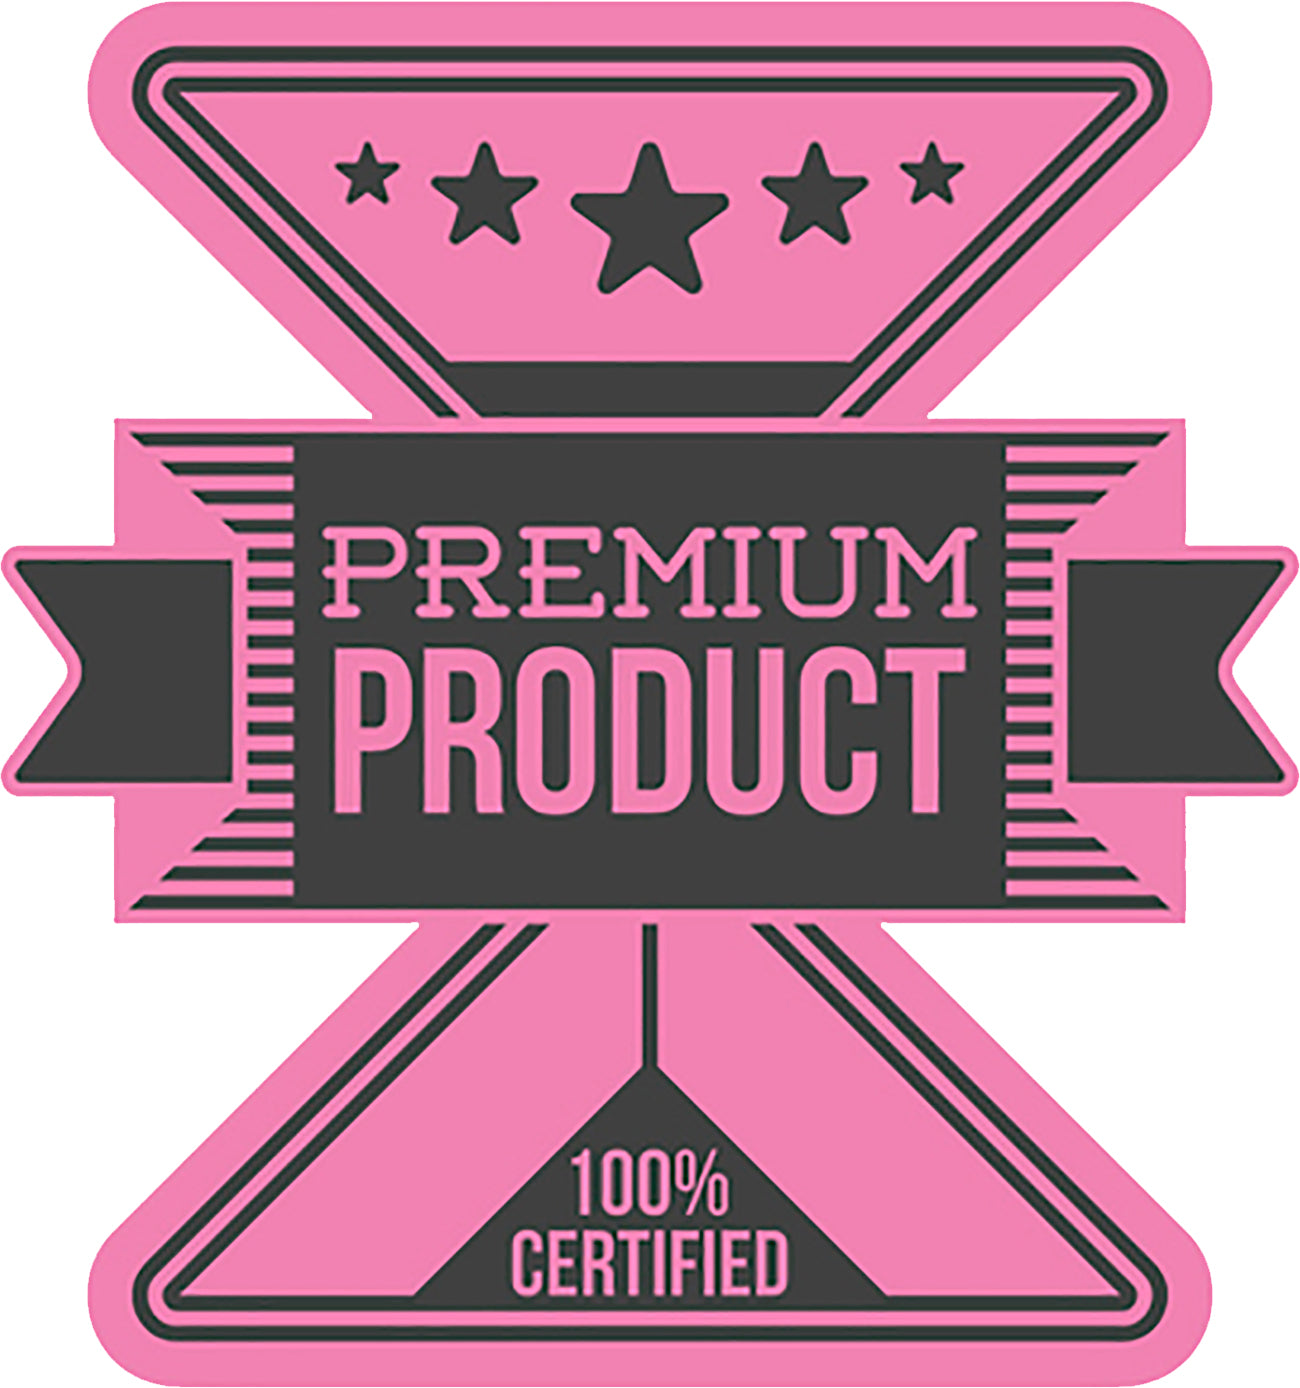 Cool Vintage Neon Premium High Quality Product Icon Logo #9 Vinyl Decal Sticker